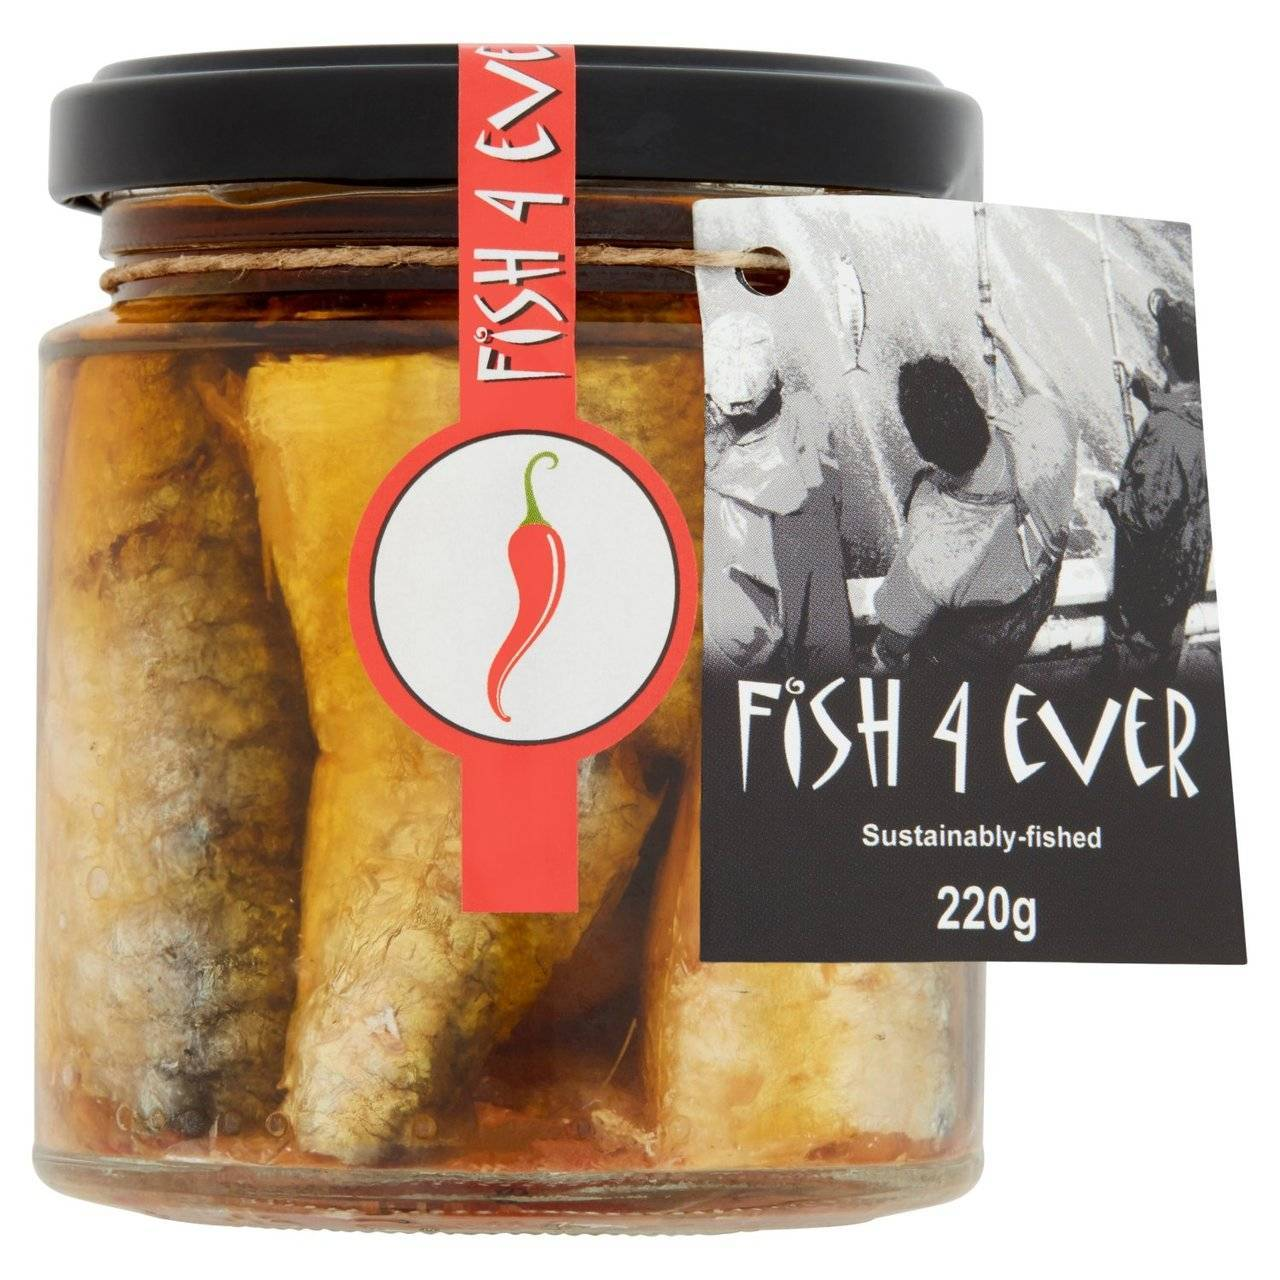 Fish 4 Ever - Organic Chilli Sardines With Org Sundried Tomatoes & Olives 220g (x 6pack)